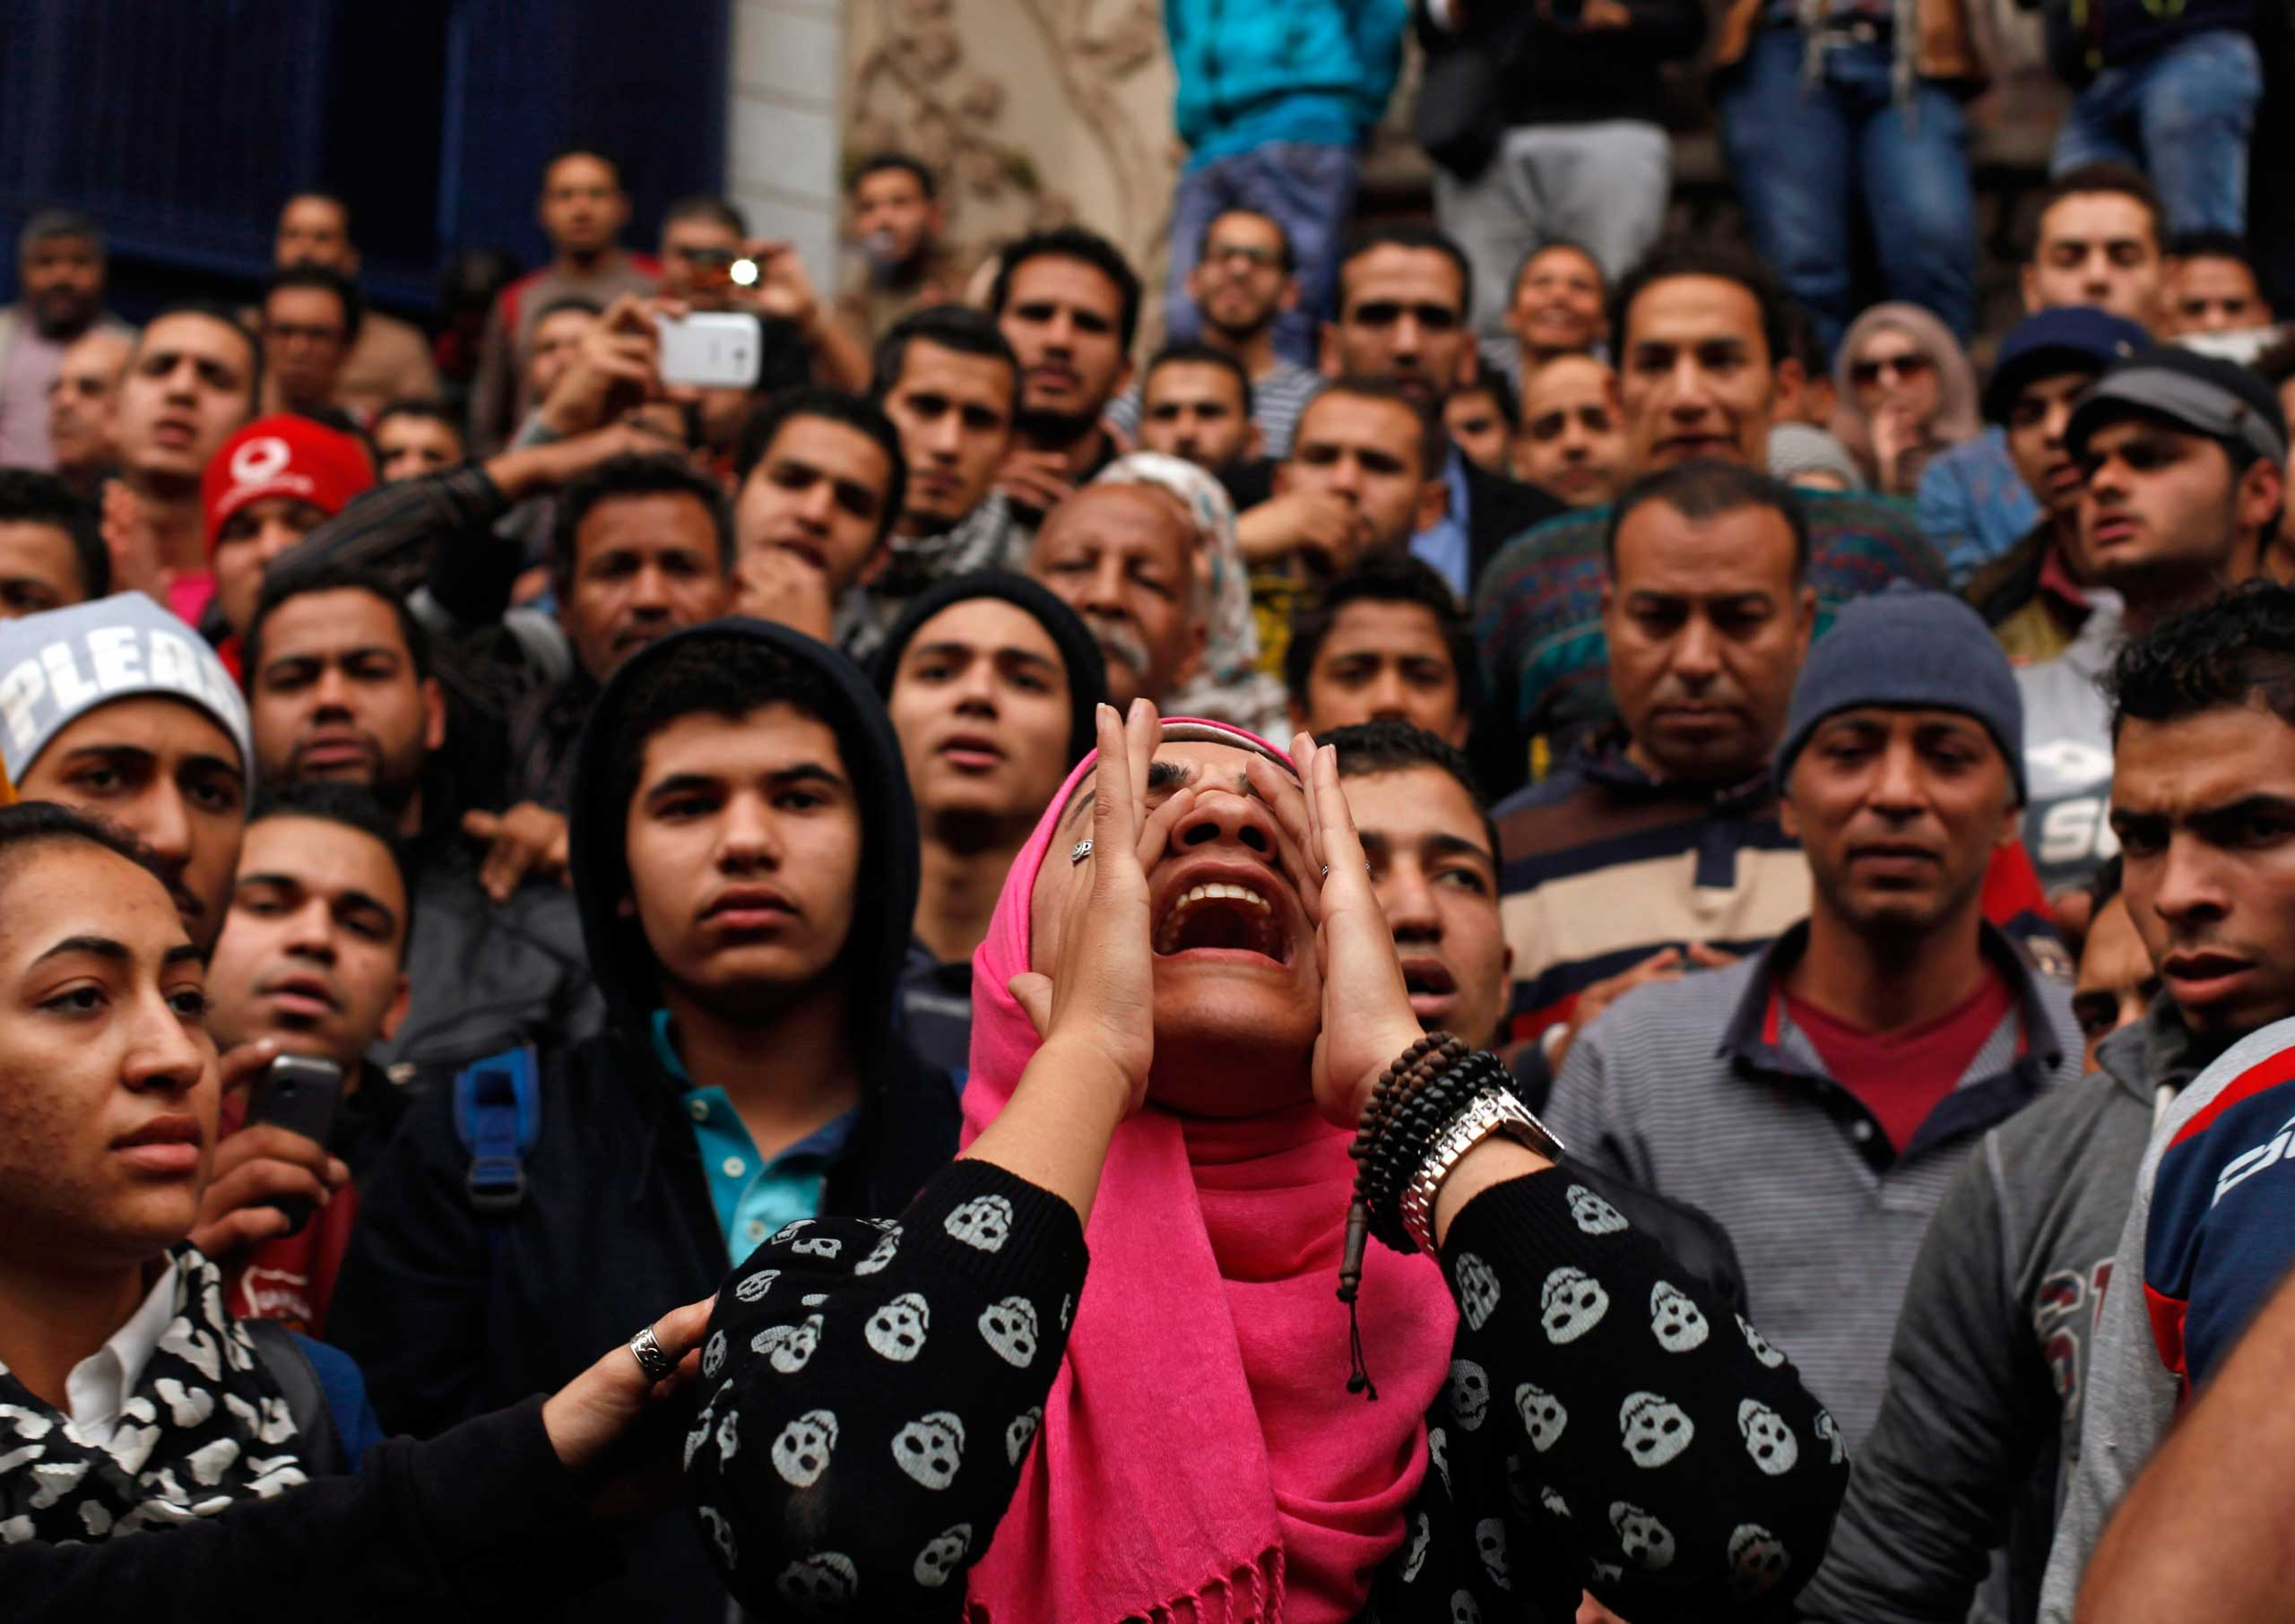 An anti-government protester chants slogans during a protest in front of the journalists' syndicate in Cairo, Jan. 25, 2015.